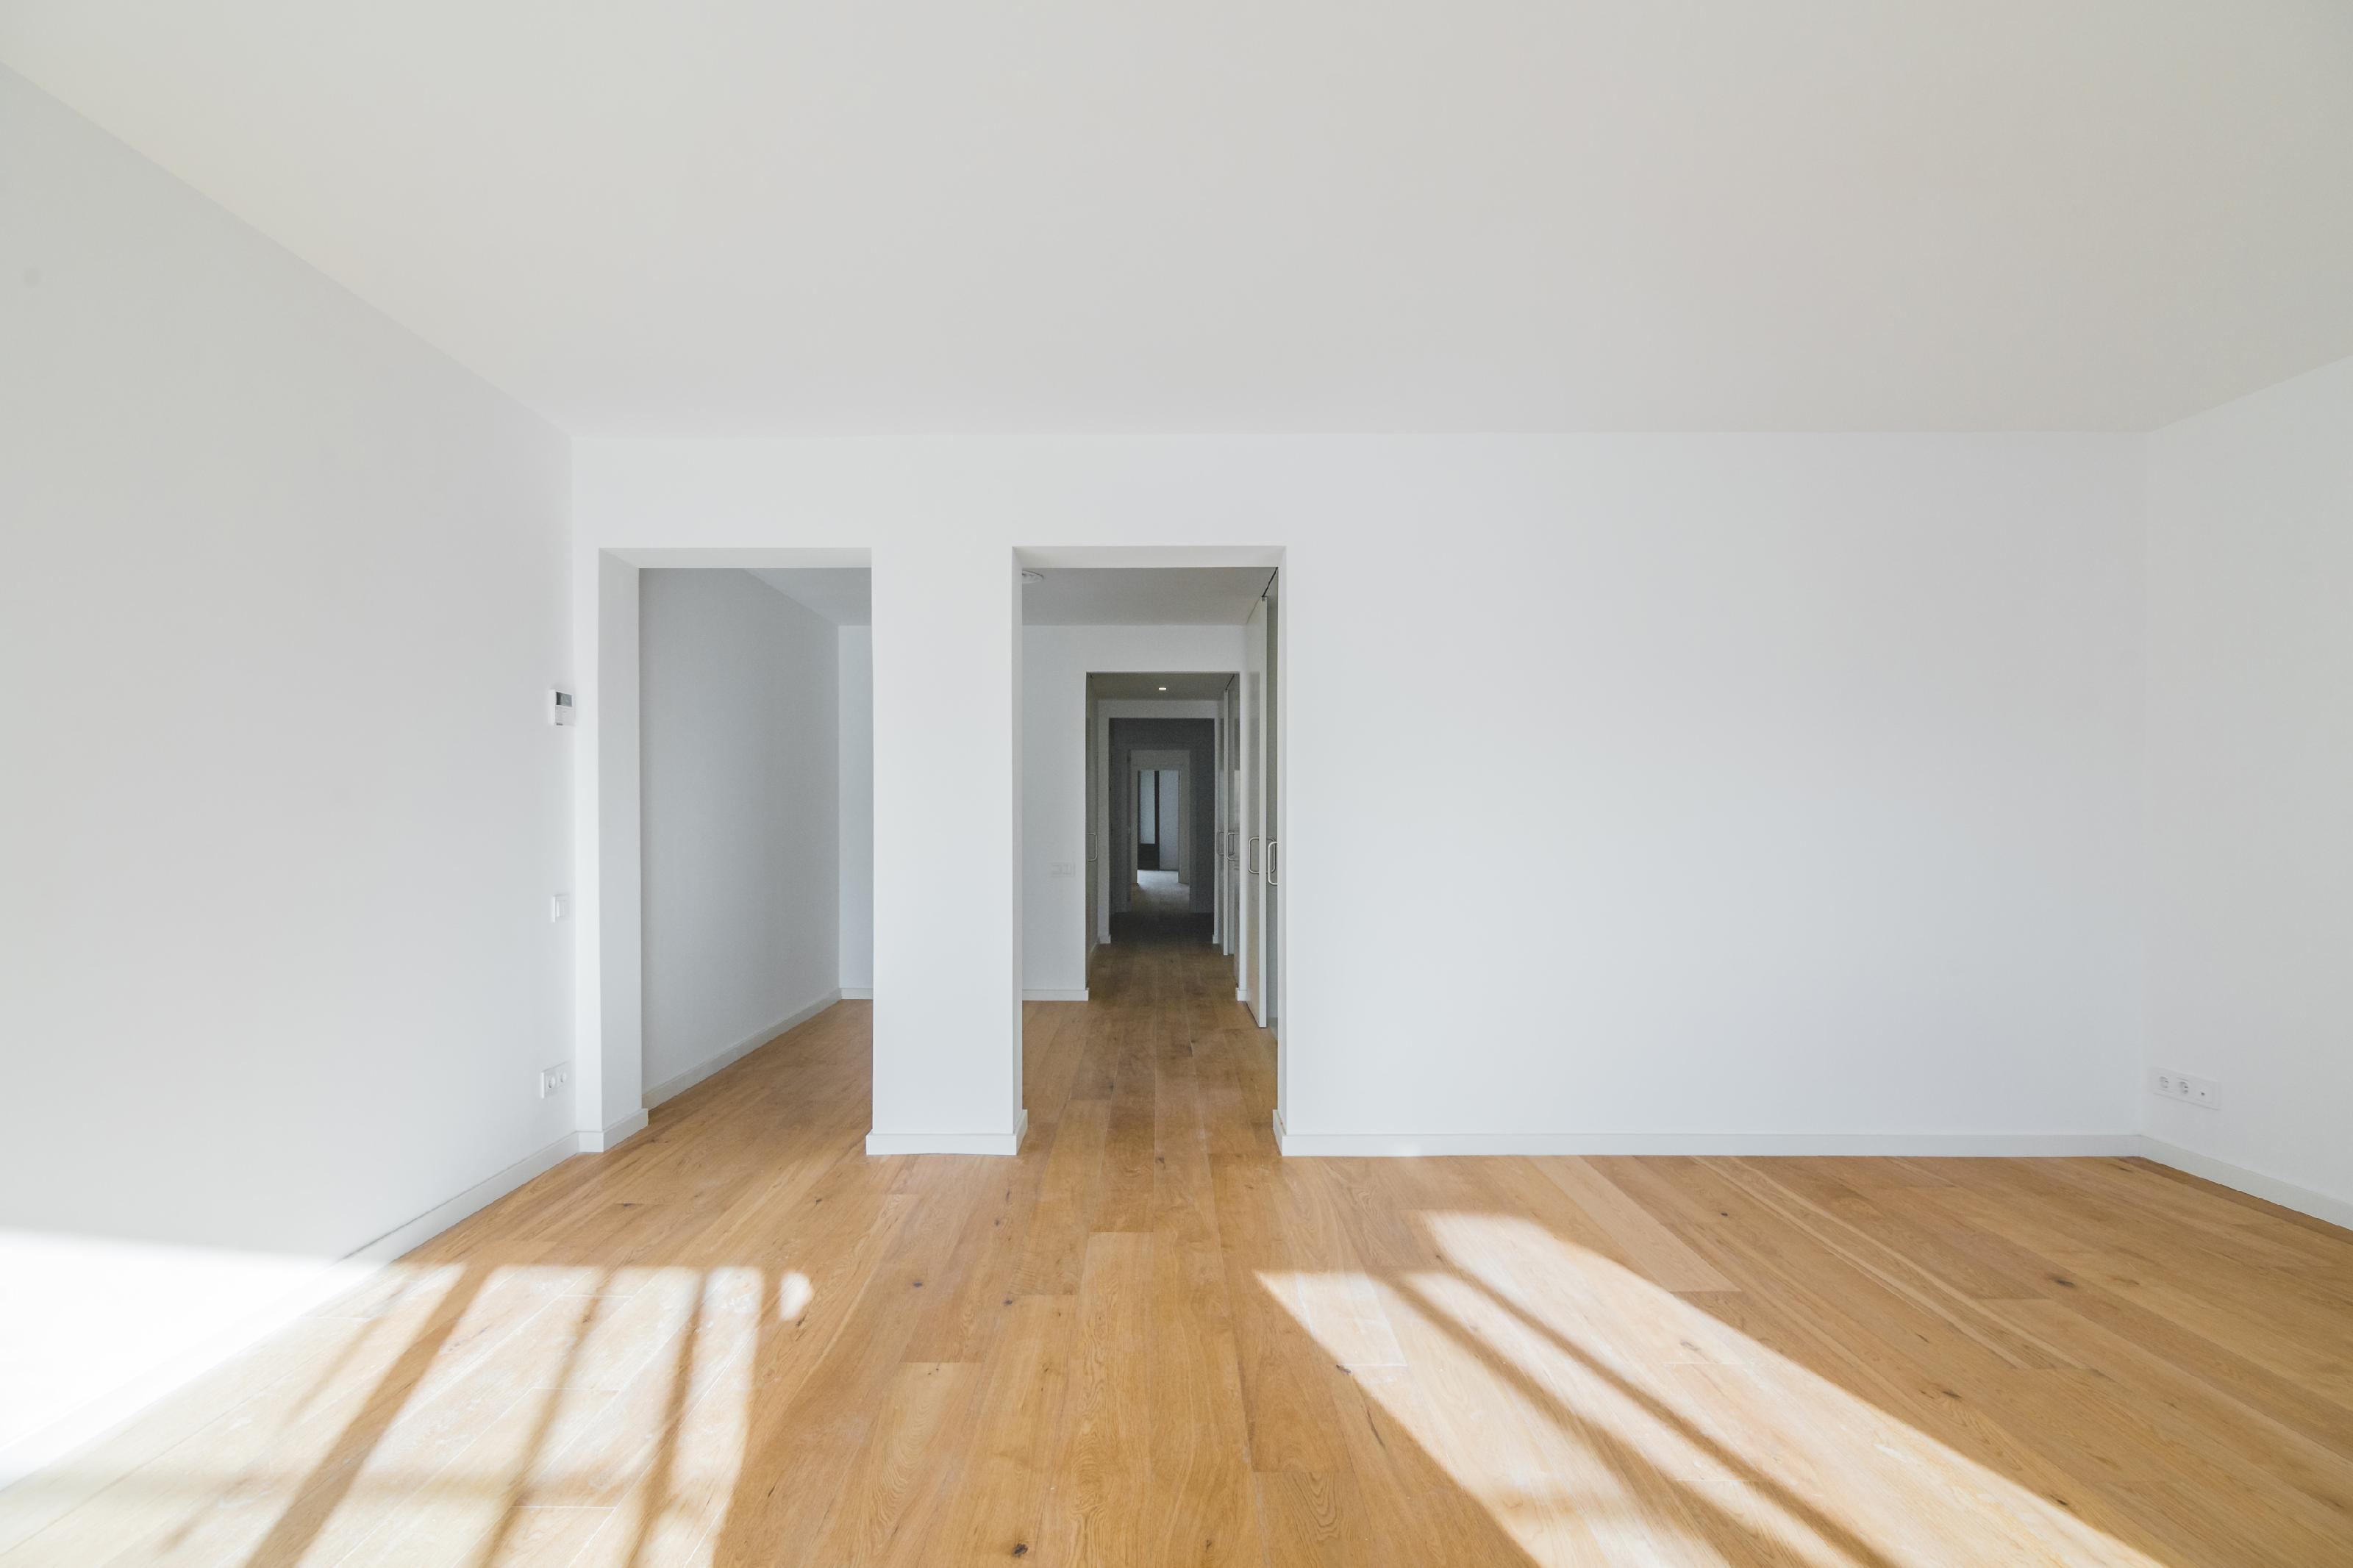 173872 Apartment for sale in Eixample, Old Left Eixample 2